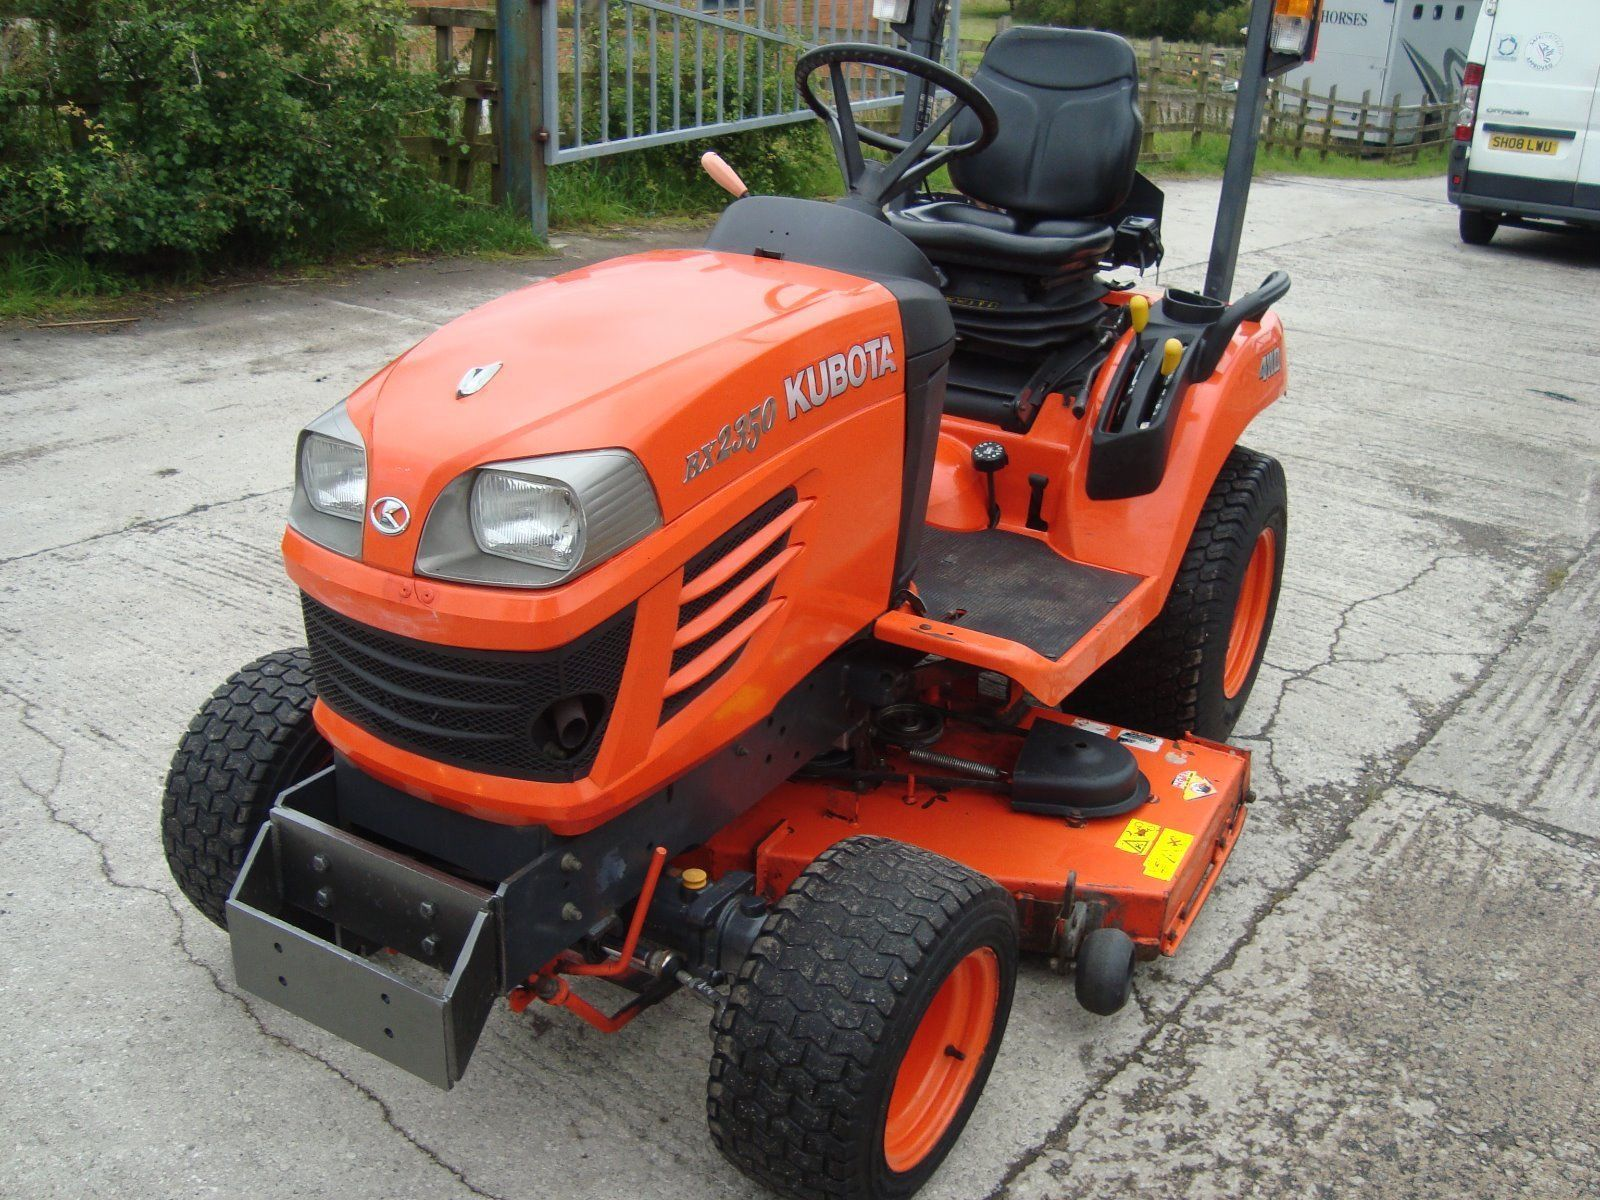 kubota bx2350 compact tractor ride on mower also available. Black Bedroom Furniture Sets. Home Design Ideas